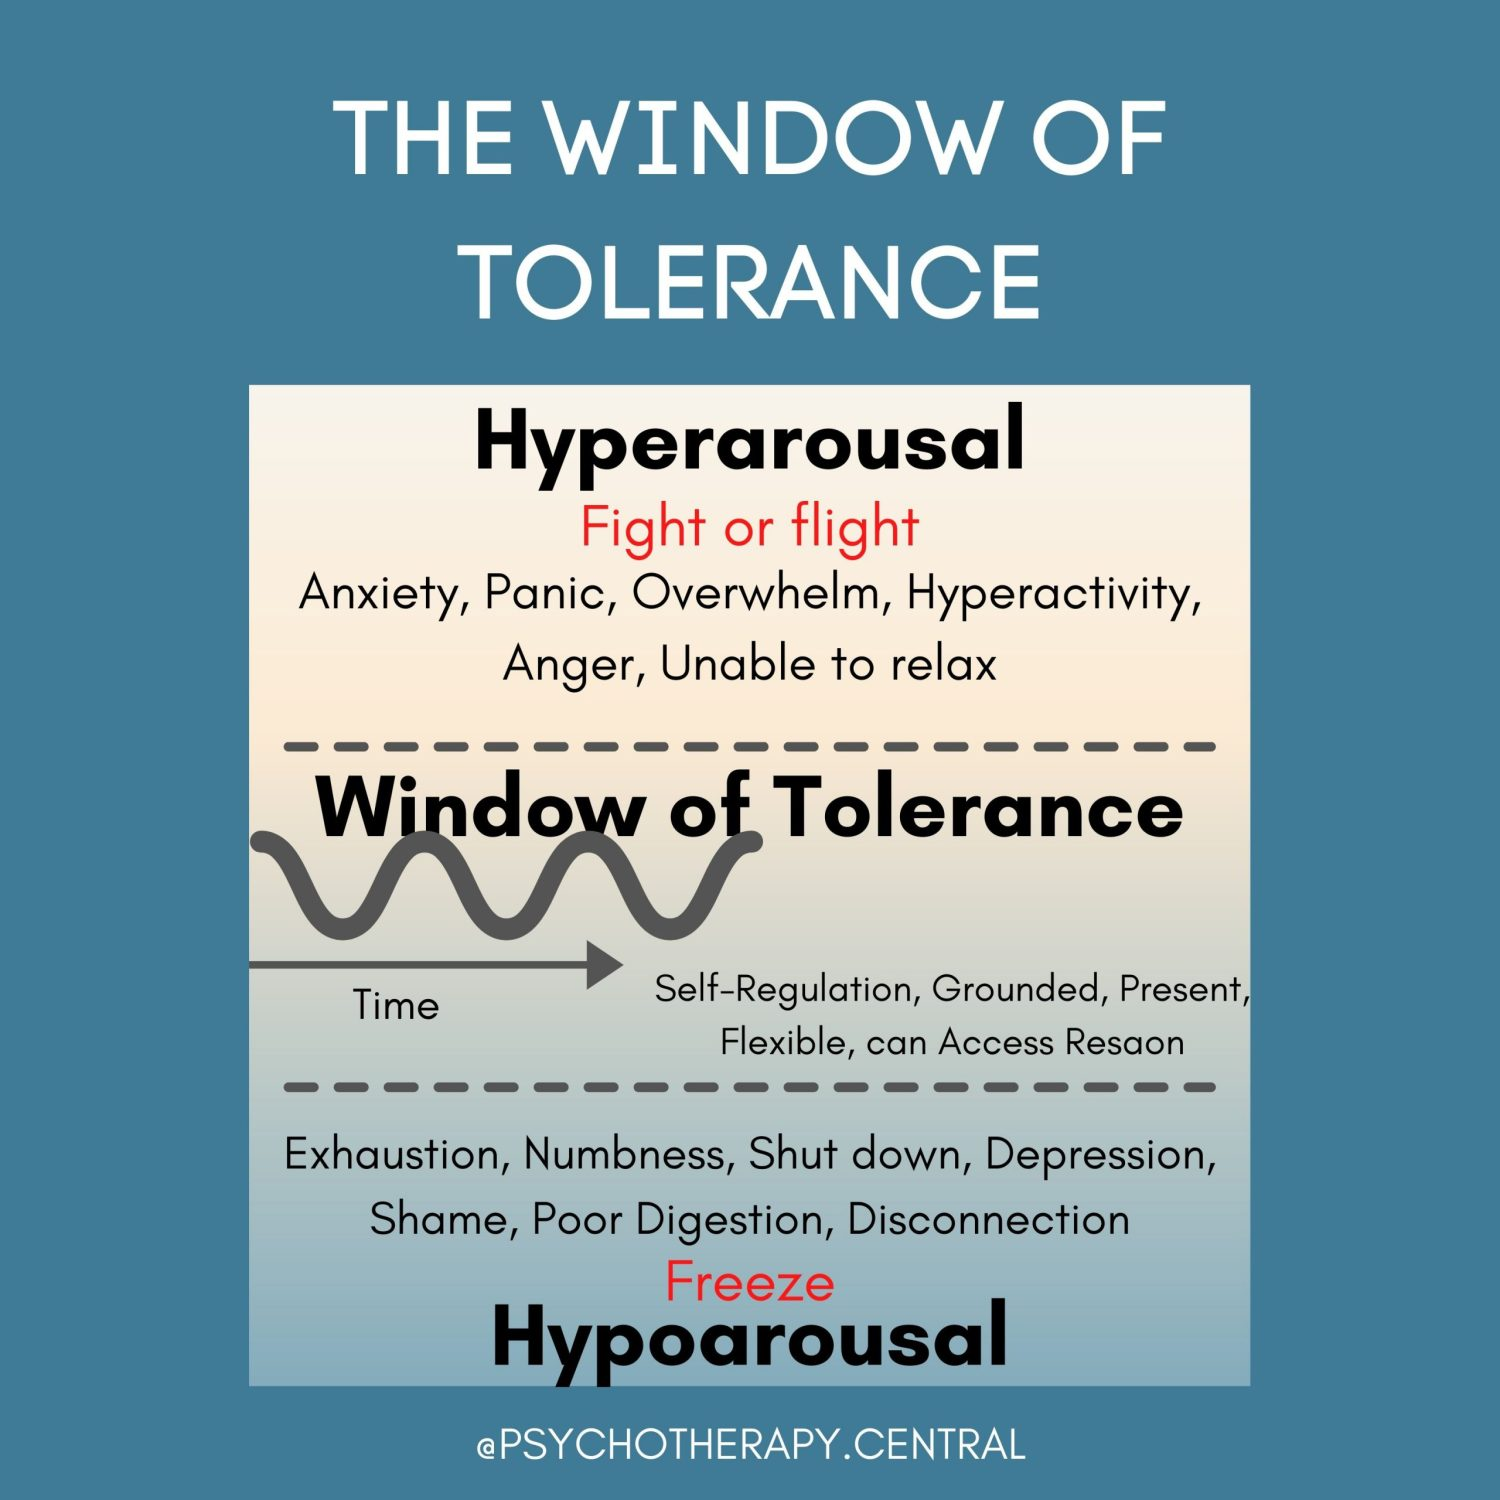 what is the window of tolerance